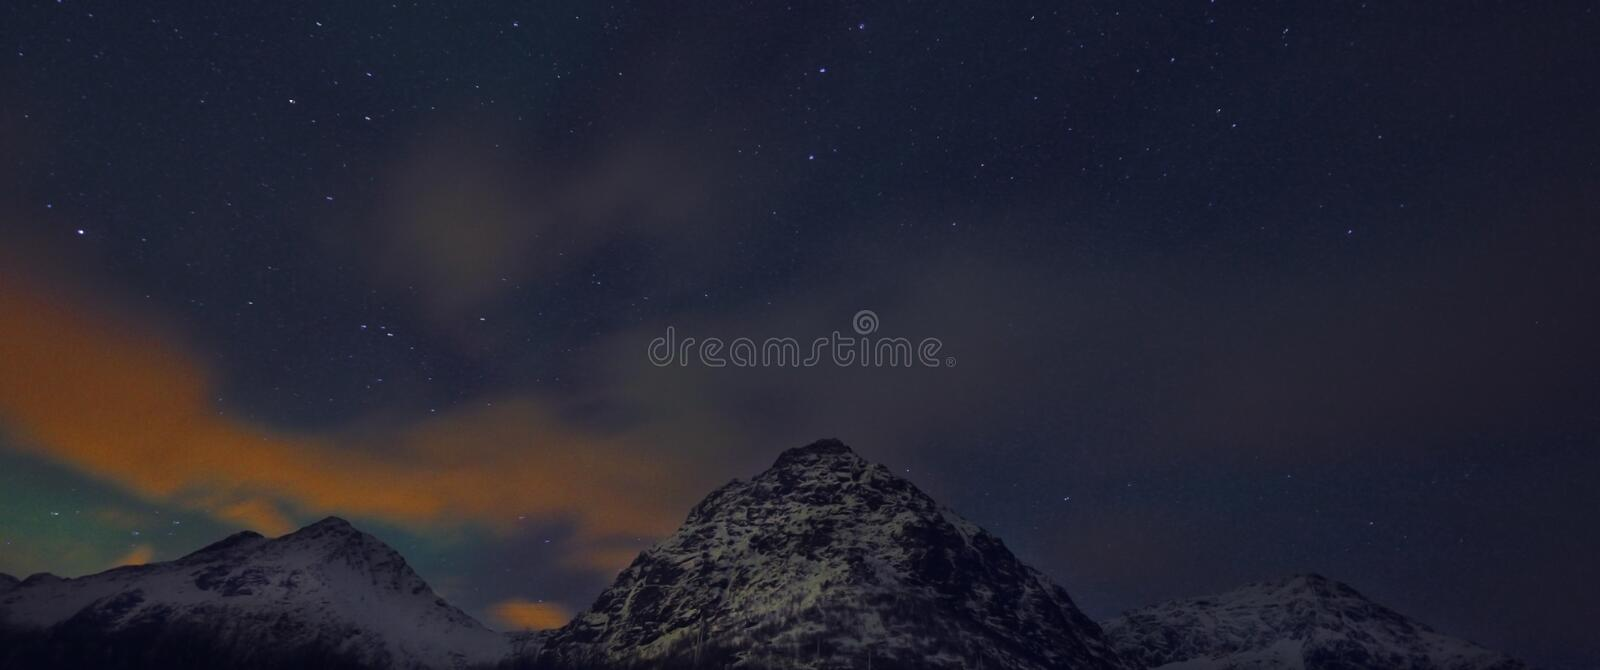 Amazing multicolored Aurora Borealis also know as Northern Lights in the night sky over Lofoten landscape, Norway, Scandinavia. stock photos